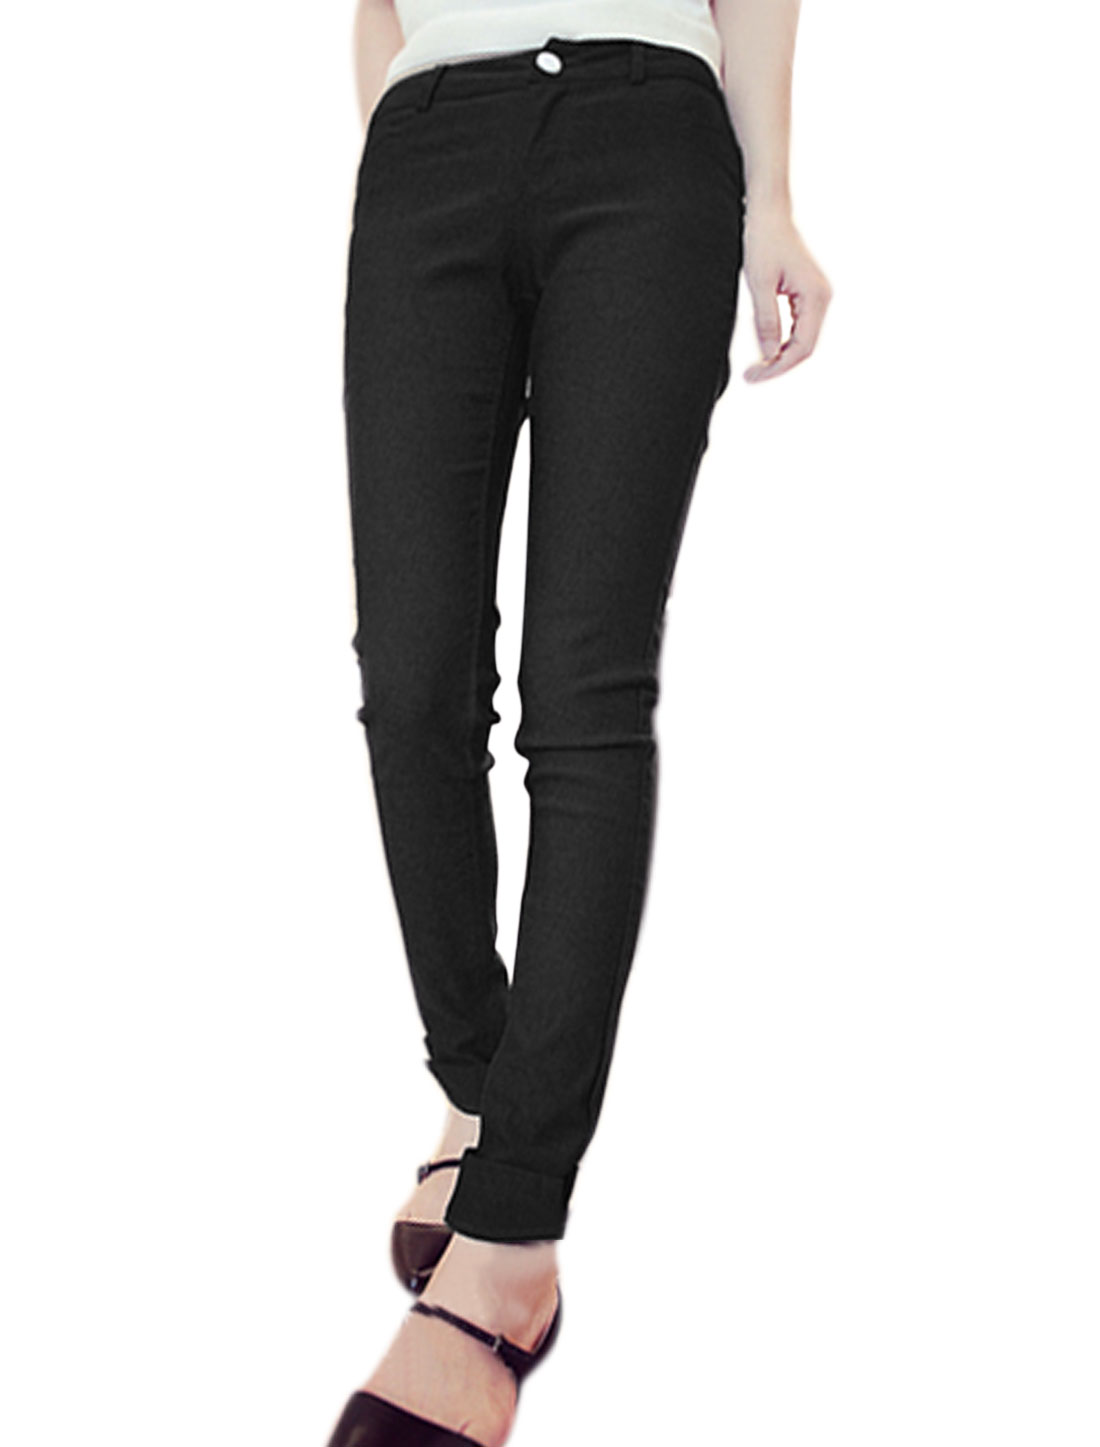 Ladies Natural Waist Two Front Pockets Skinny Leisure Pencil Pants Black XS